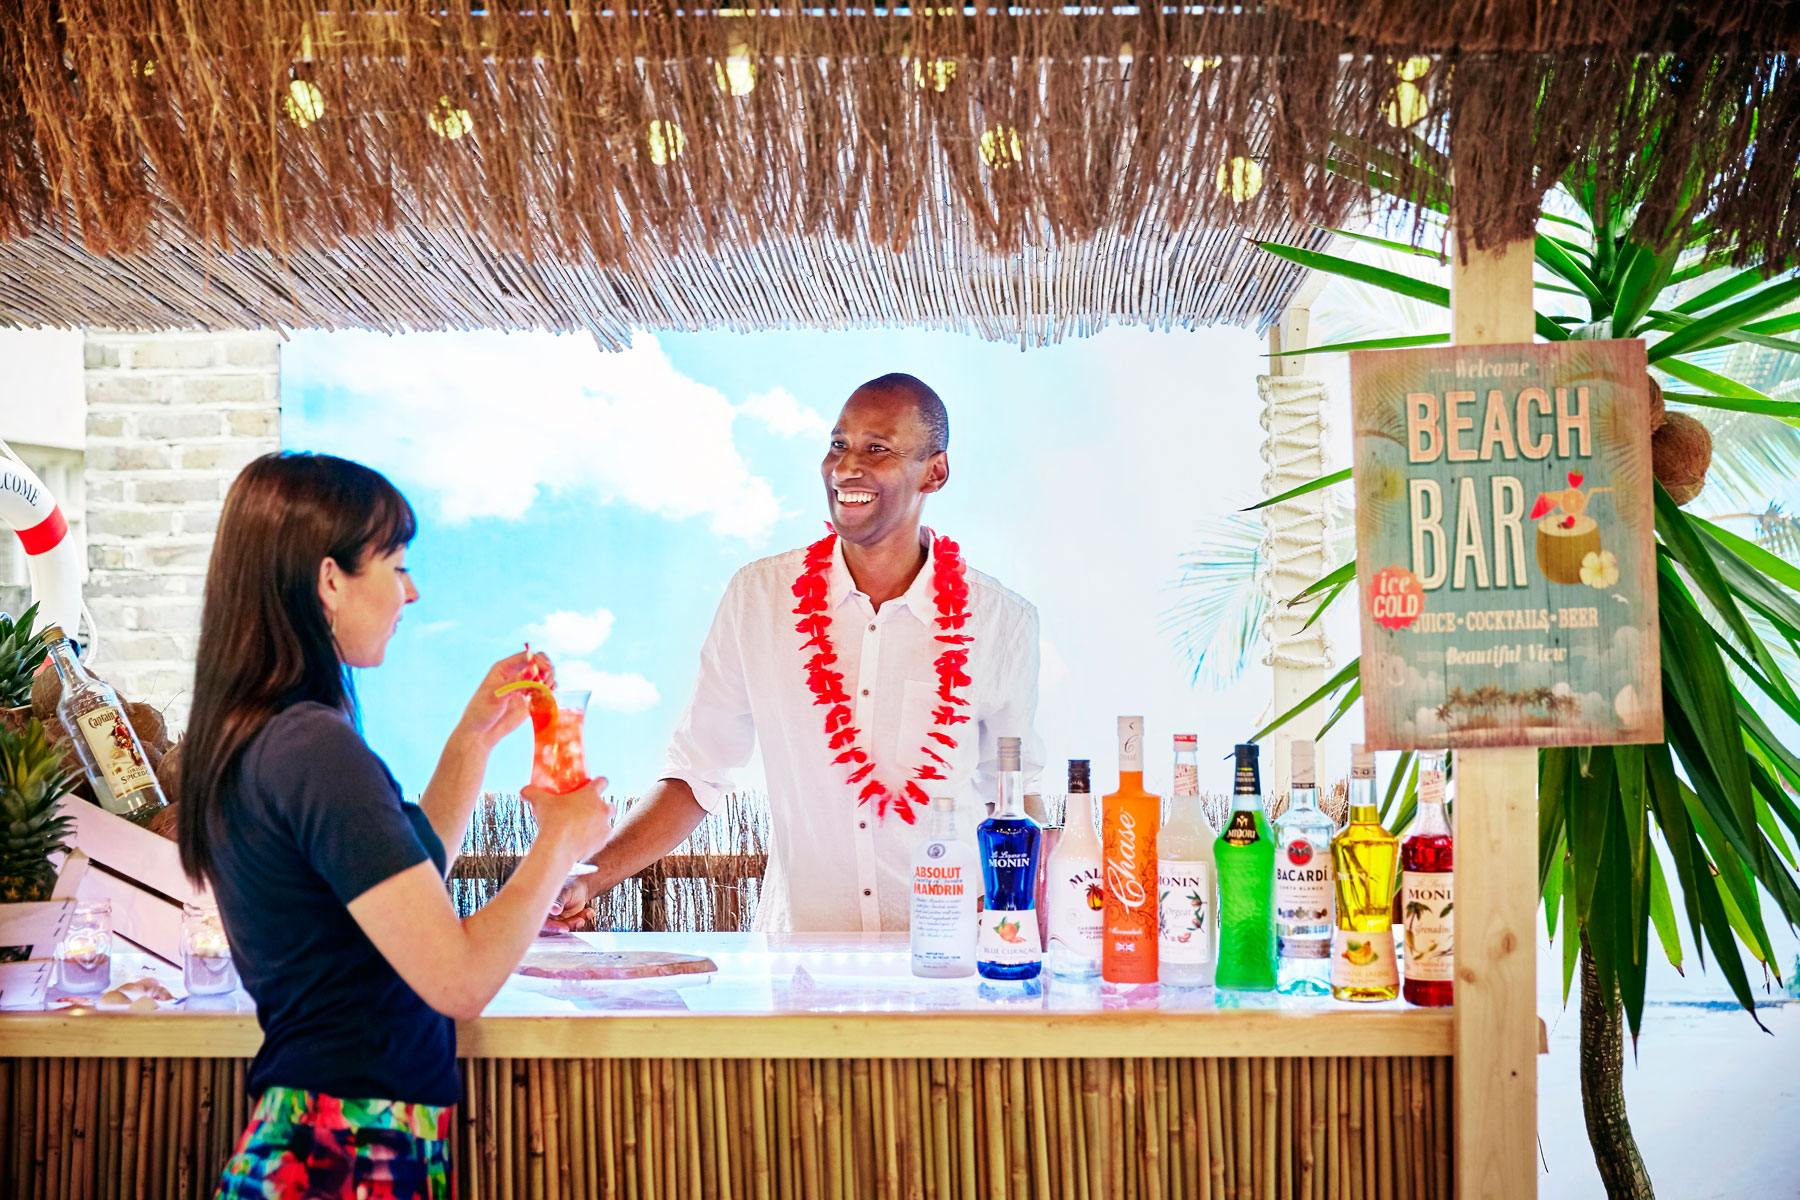 The Montague On The Gardens Brings The Bahamas To The City Of London